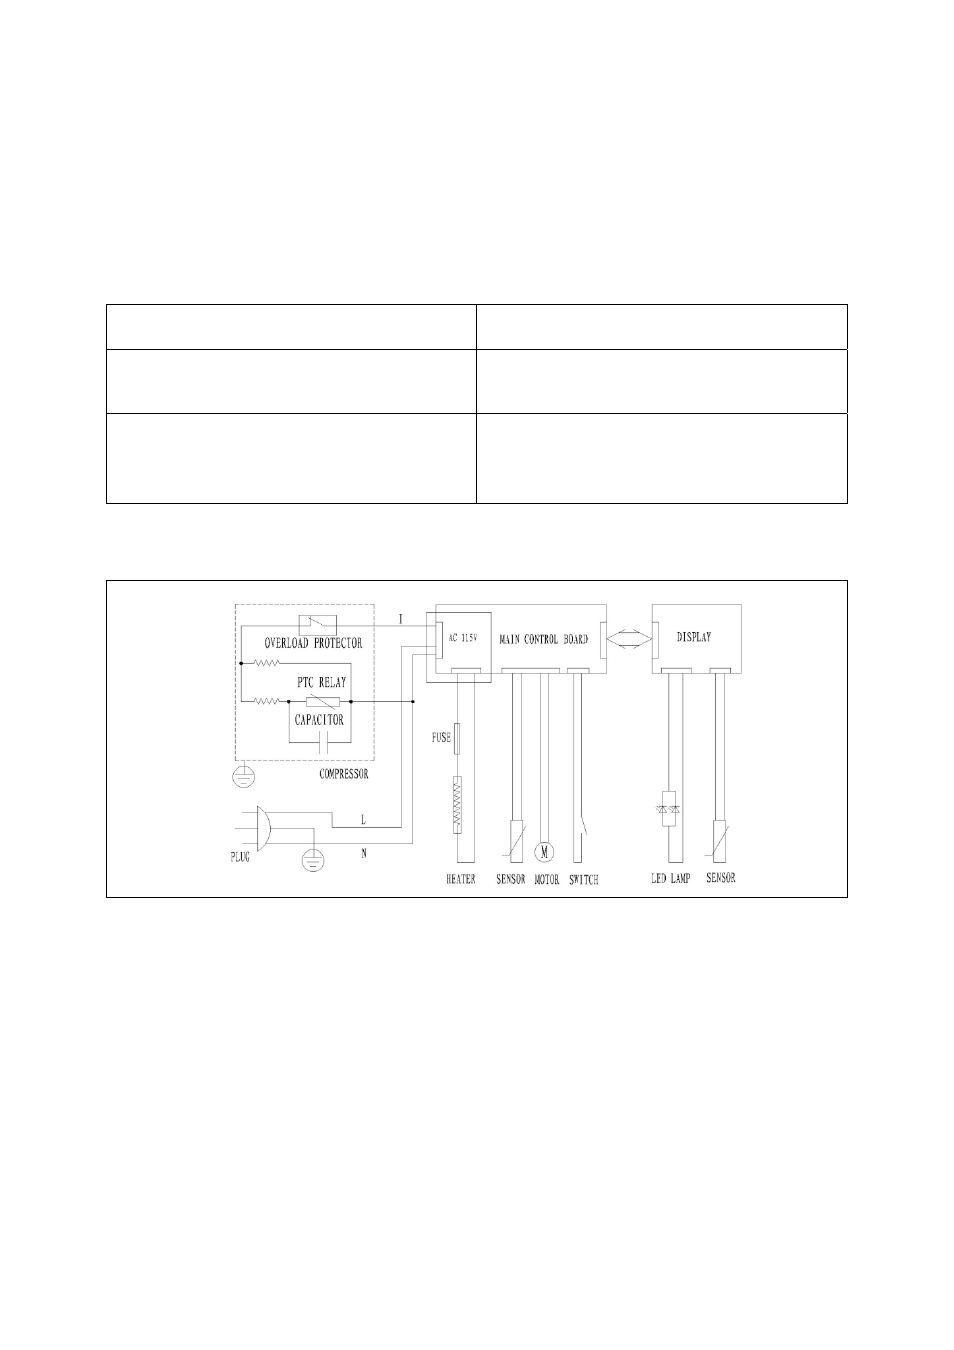 Avanti Refrigerator Wiring Diagram Electrical Mg Zr Ignition Diagrams Schematics Service For Your Appliance Products Customer Garelli